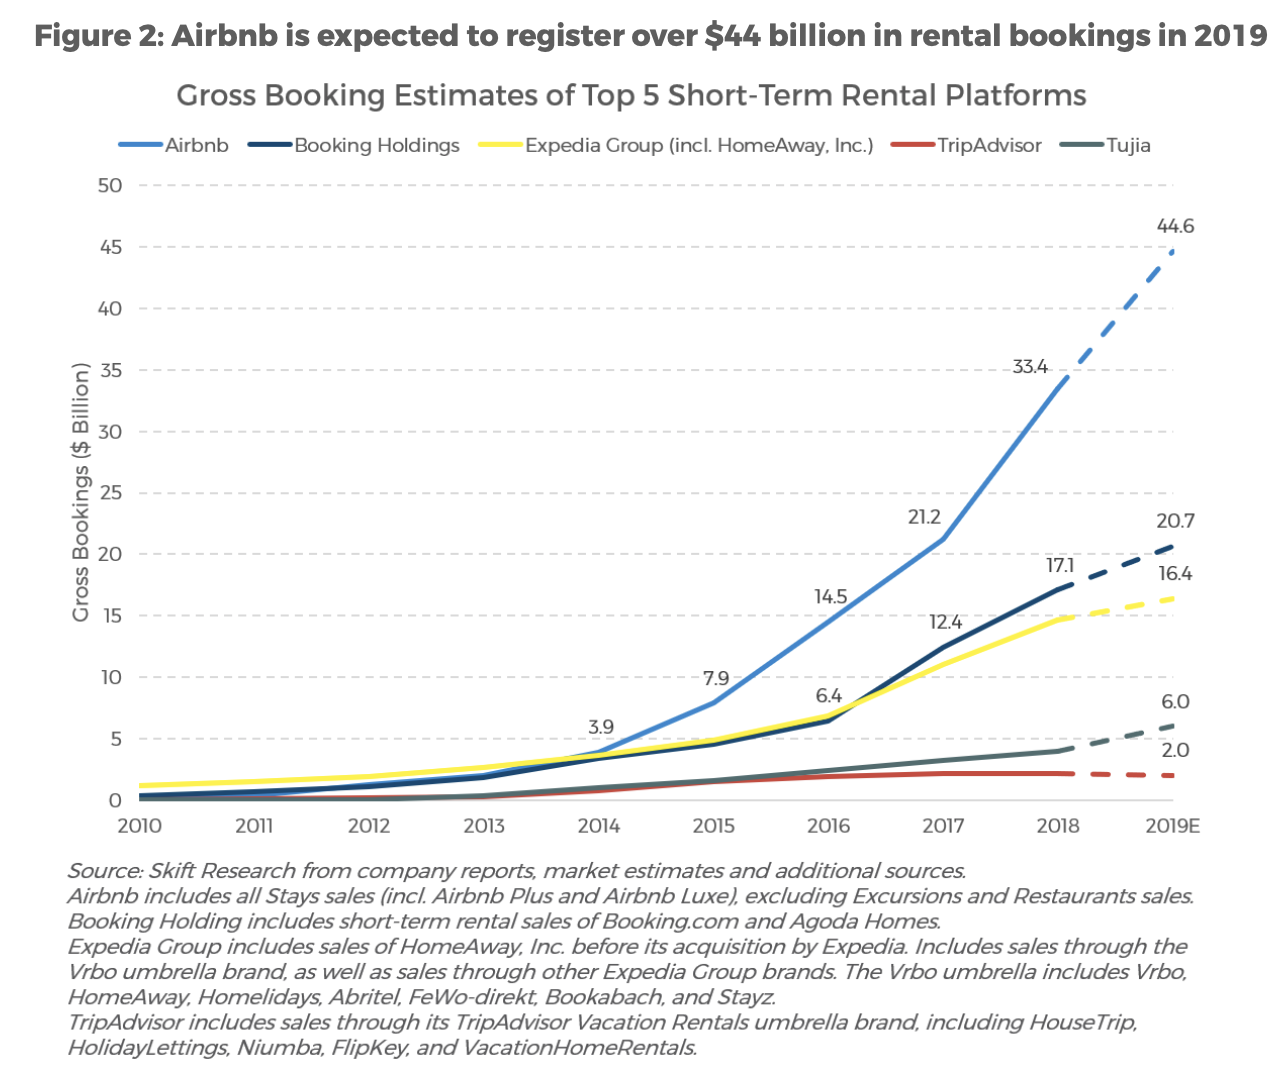 airbnb-bookig-holdings-expedia.png